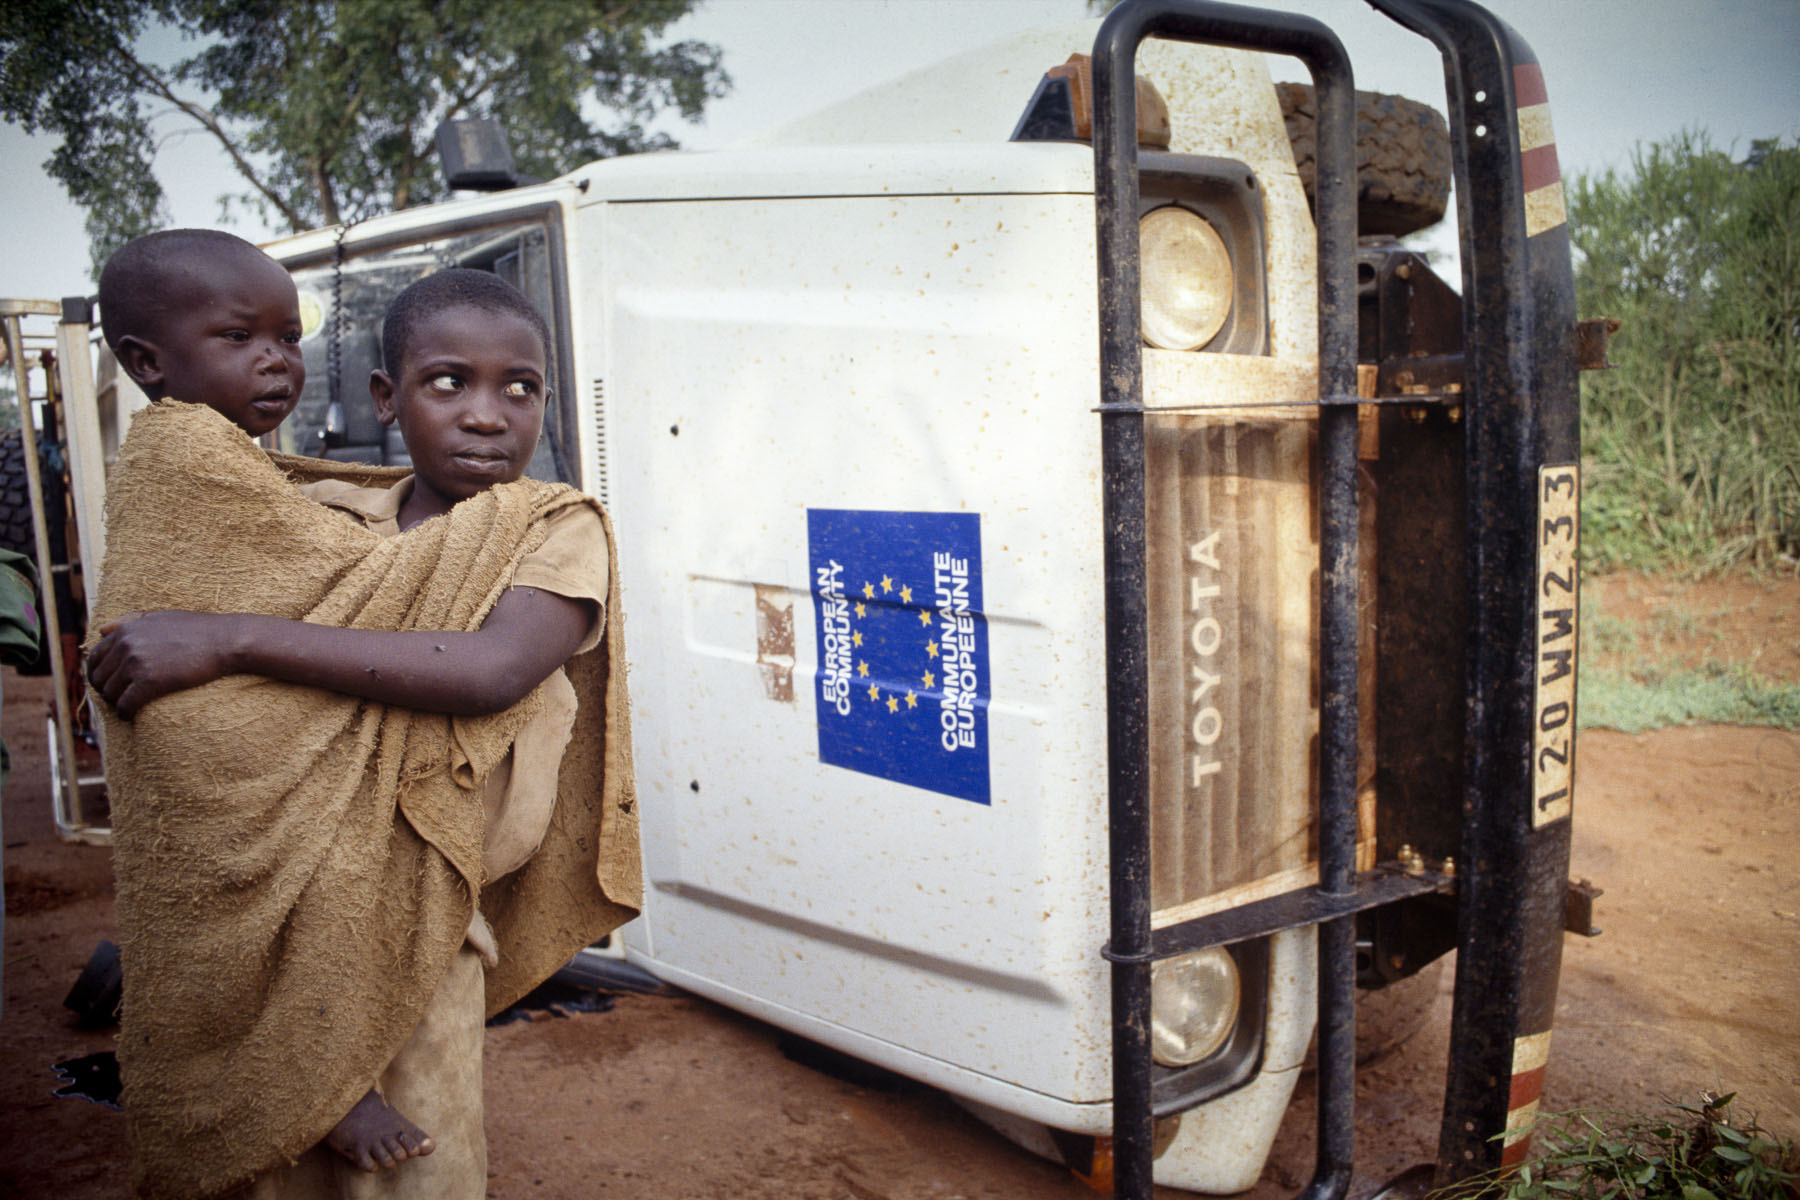 A «Doctors Without Borders»'s car overturned after an accident in February 1994